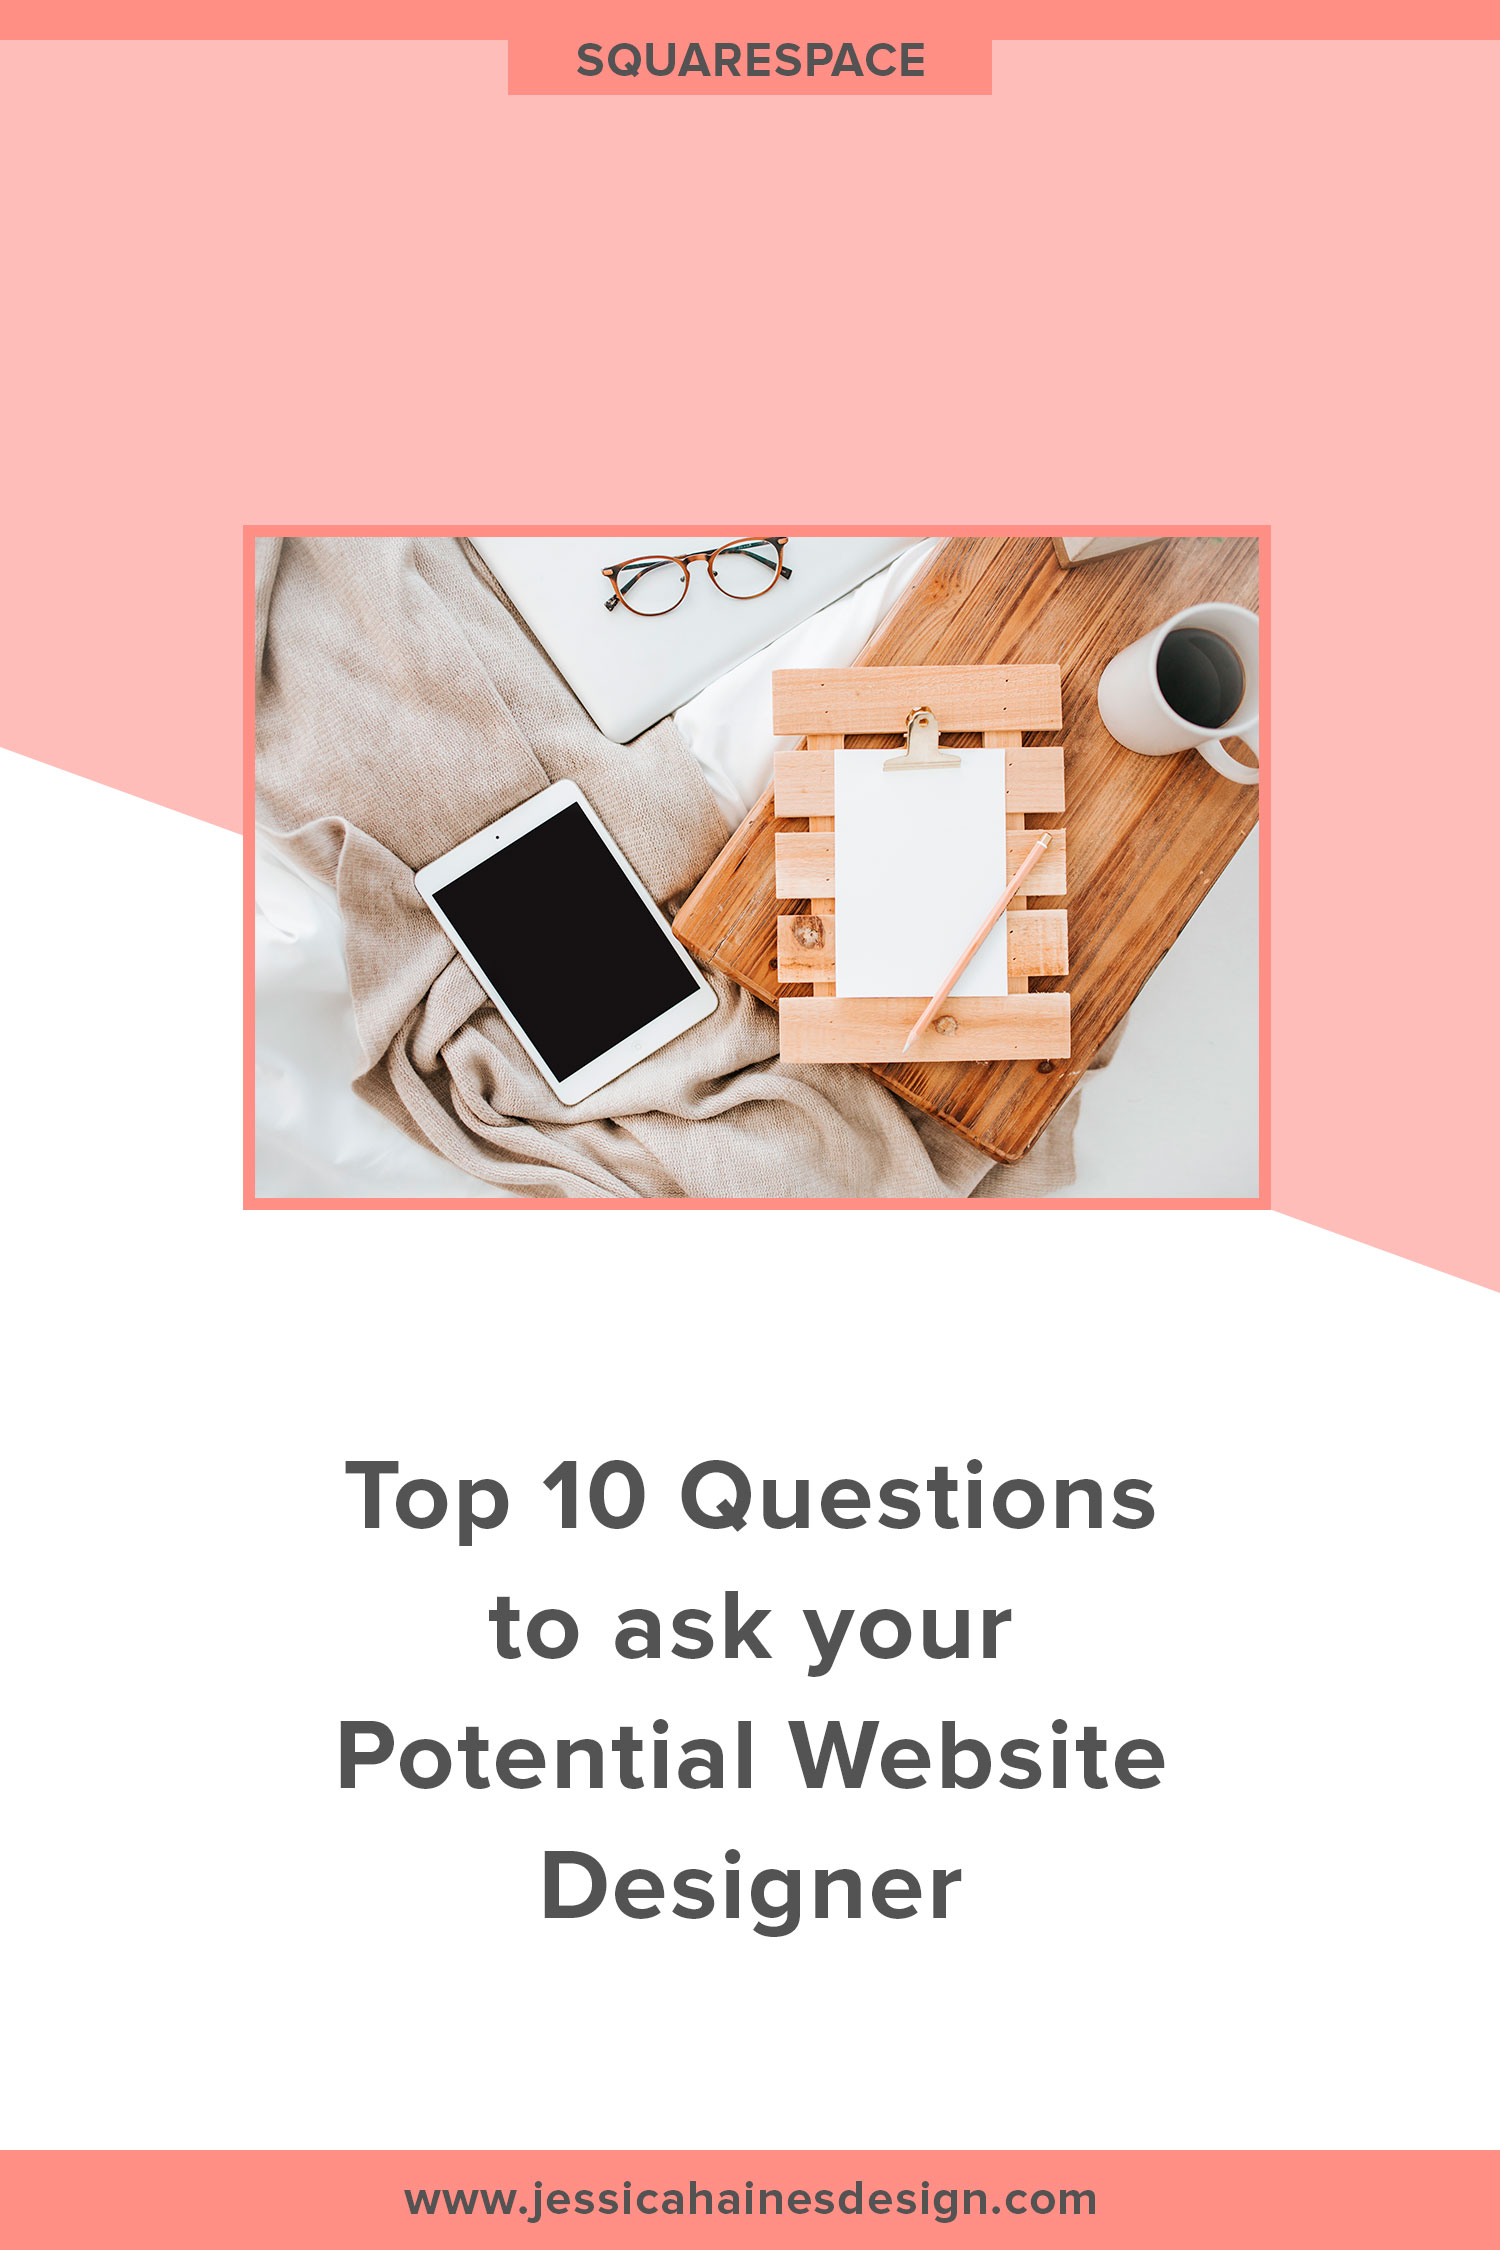 Designing your new business website can be a big deal. If you've decided to hire someone to do it for you, you want to find the right person to work with, since the right website designer can make the process a dream come true and the wrong one could be a nightmare! Click through to see the top 10 questions to ask a potential website designer so you find the right fit and enjoy the website design process so much more! | www.jessicahainesdesign